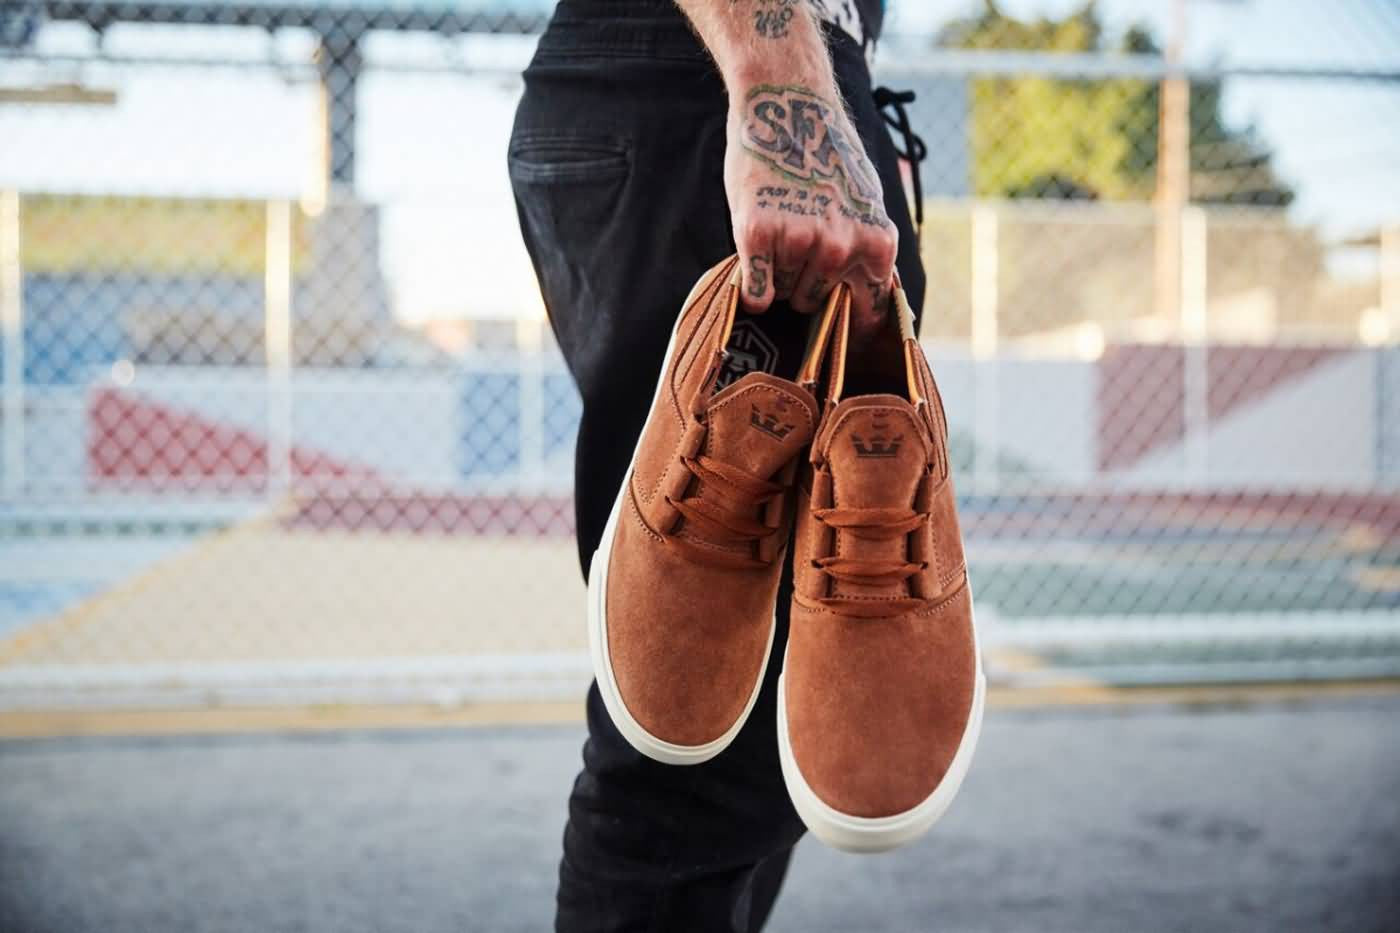 ddd8f5cb8b3 Coming' in hot with a brand new skate style! The Kensington debuts in  Supra's crown with a Lizard King signature color way with a brown suede  upper and bone ...